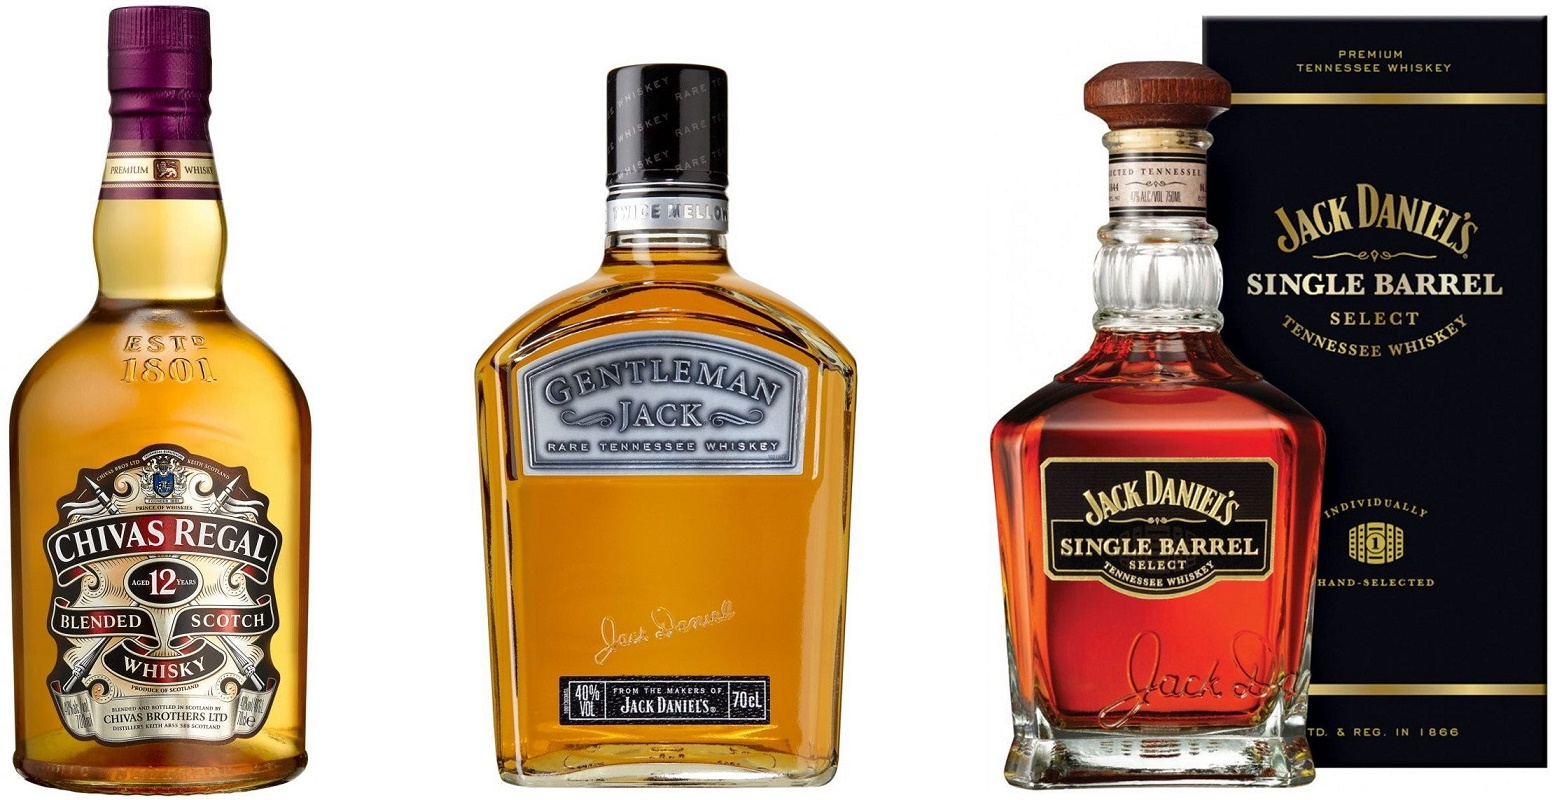 Chivas Regal Jack Daniels Gentleman Single Barrel